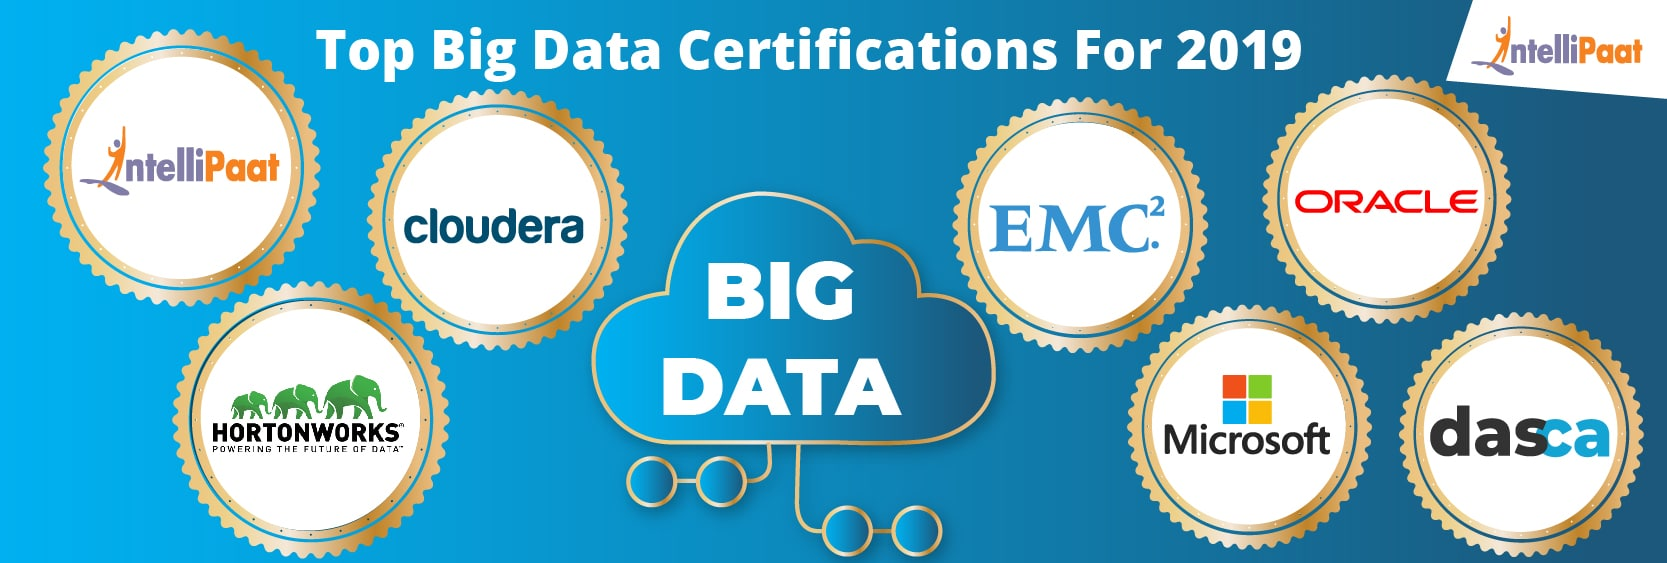 Top 10 Big Data Certifications Recognized By The Industry